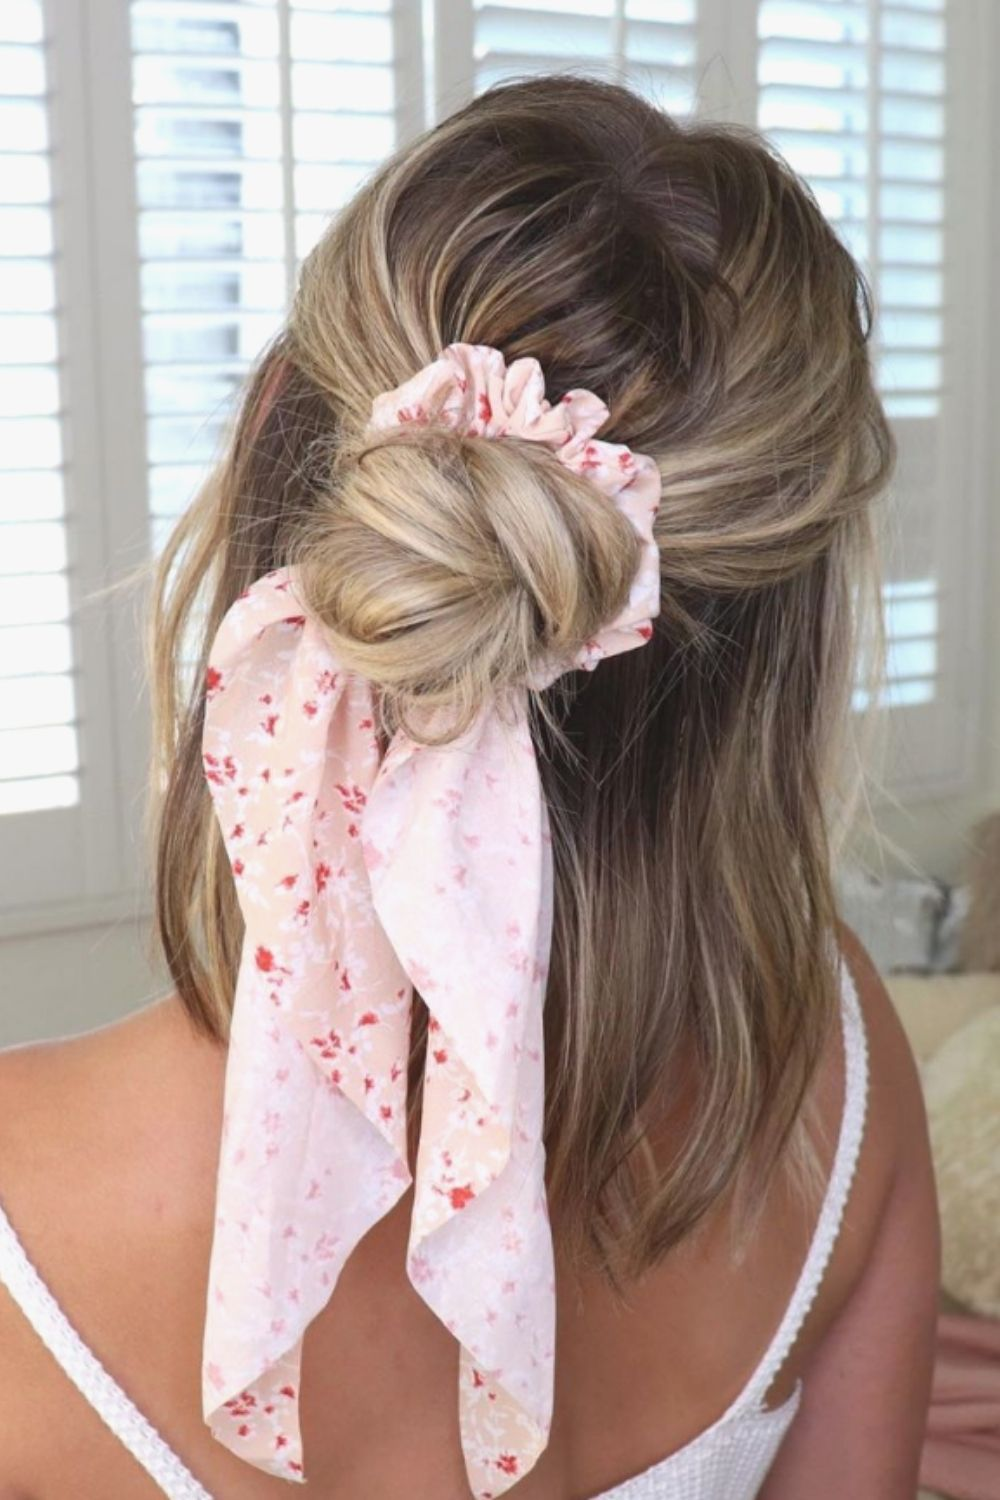 Beautiful Beach Hairstyle For A Meaningful Vacation 2021!